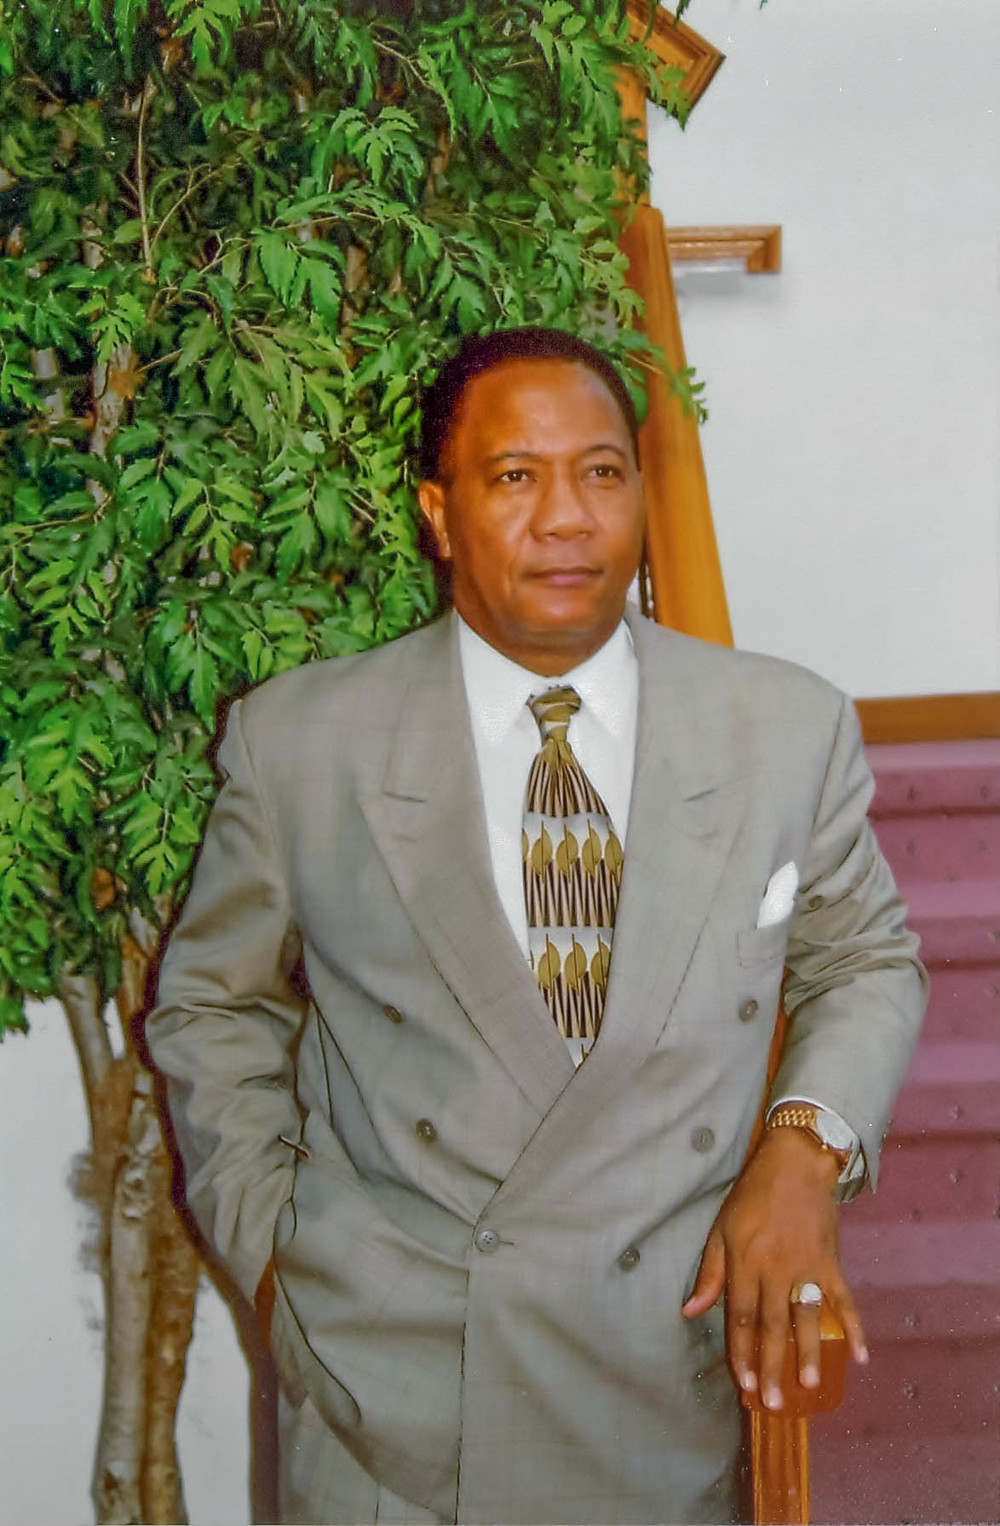 Bishop Lawrence C. Callahan Sr. 1945 - 2001